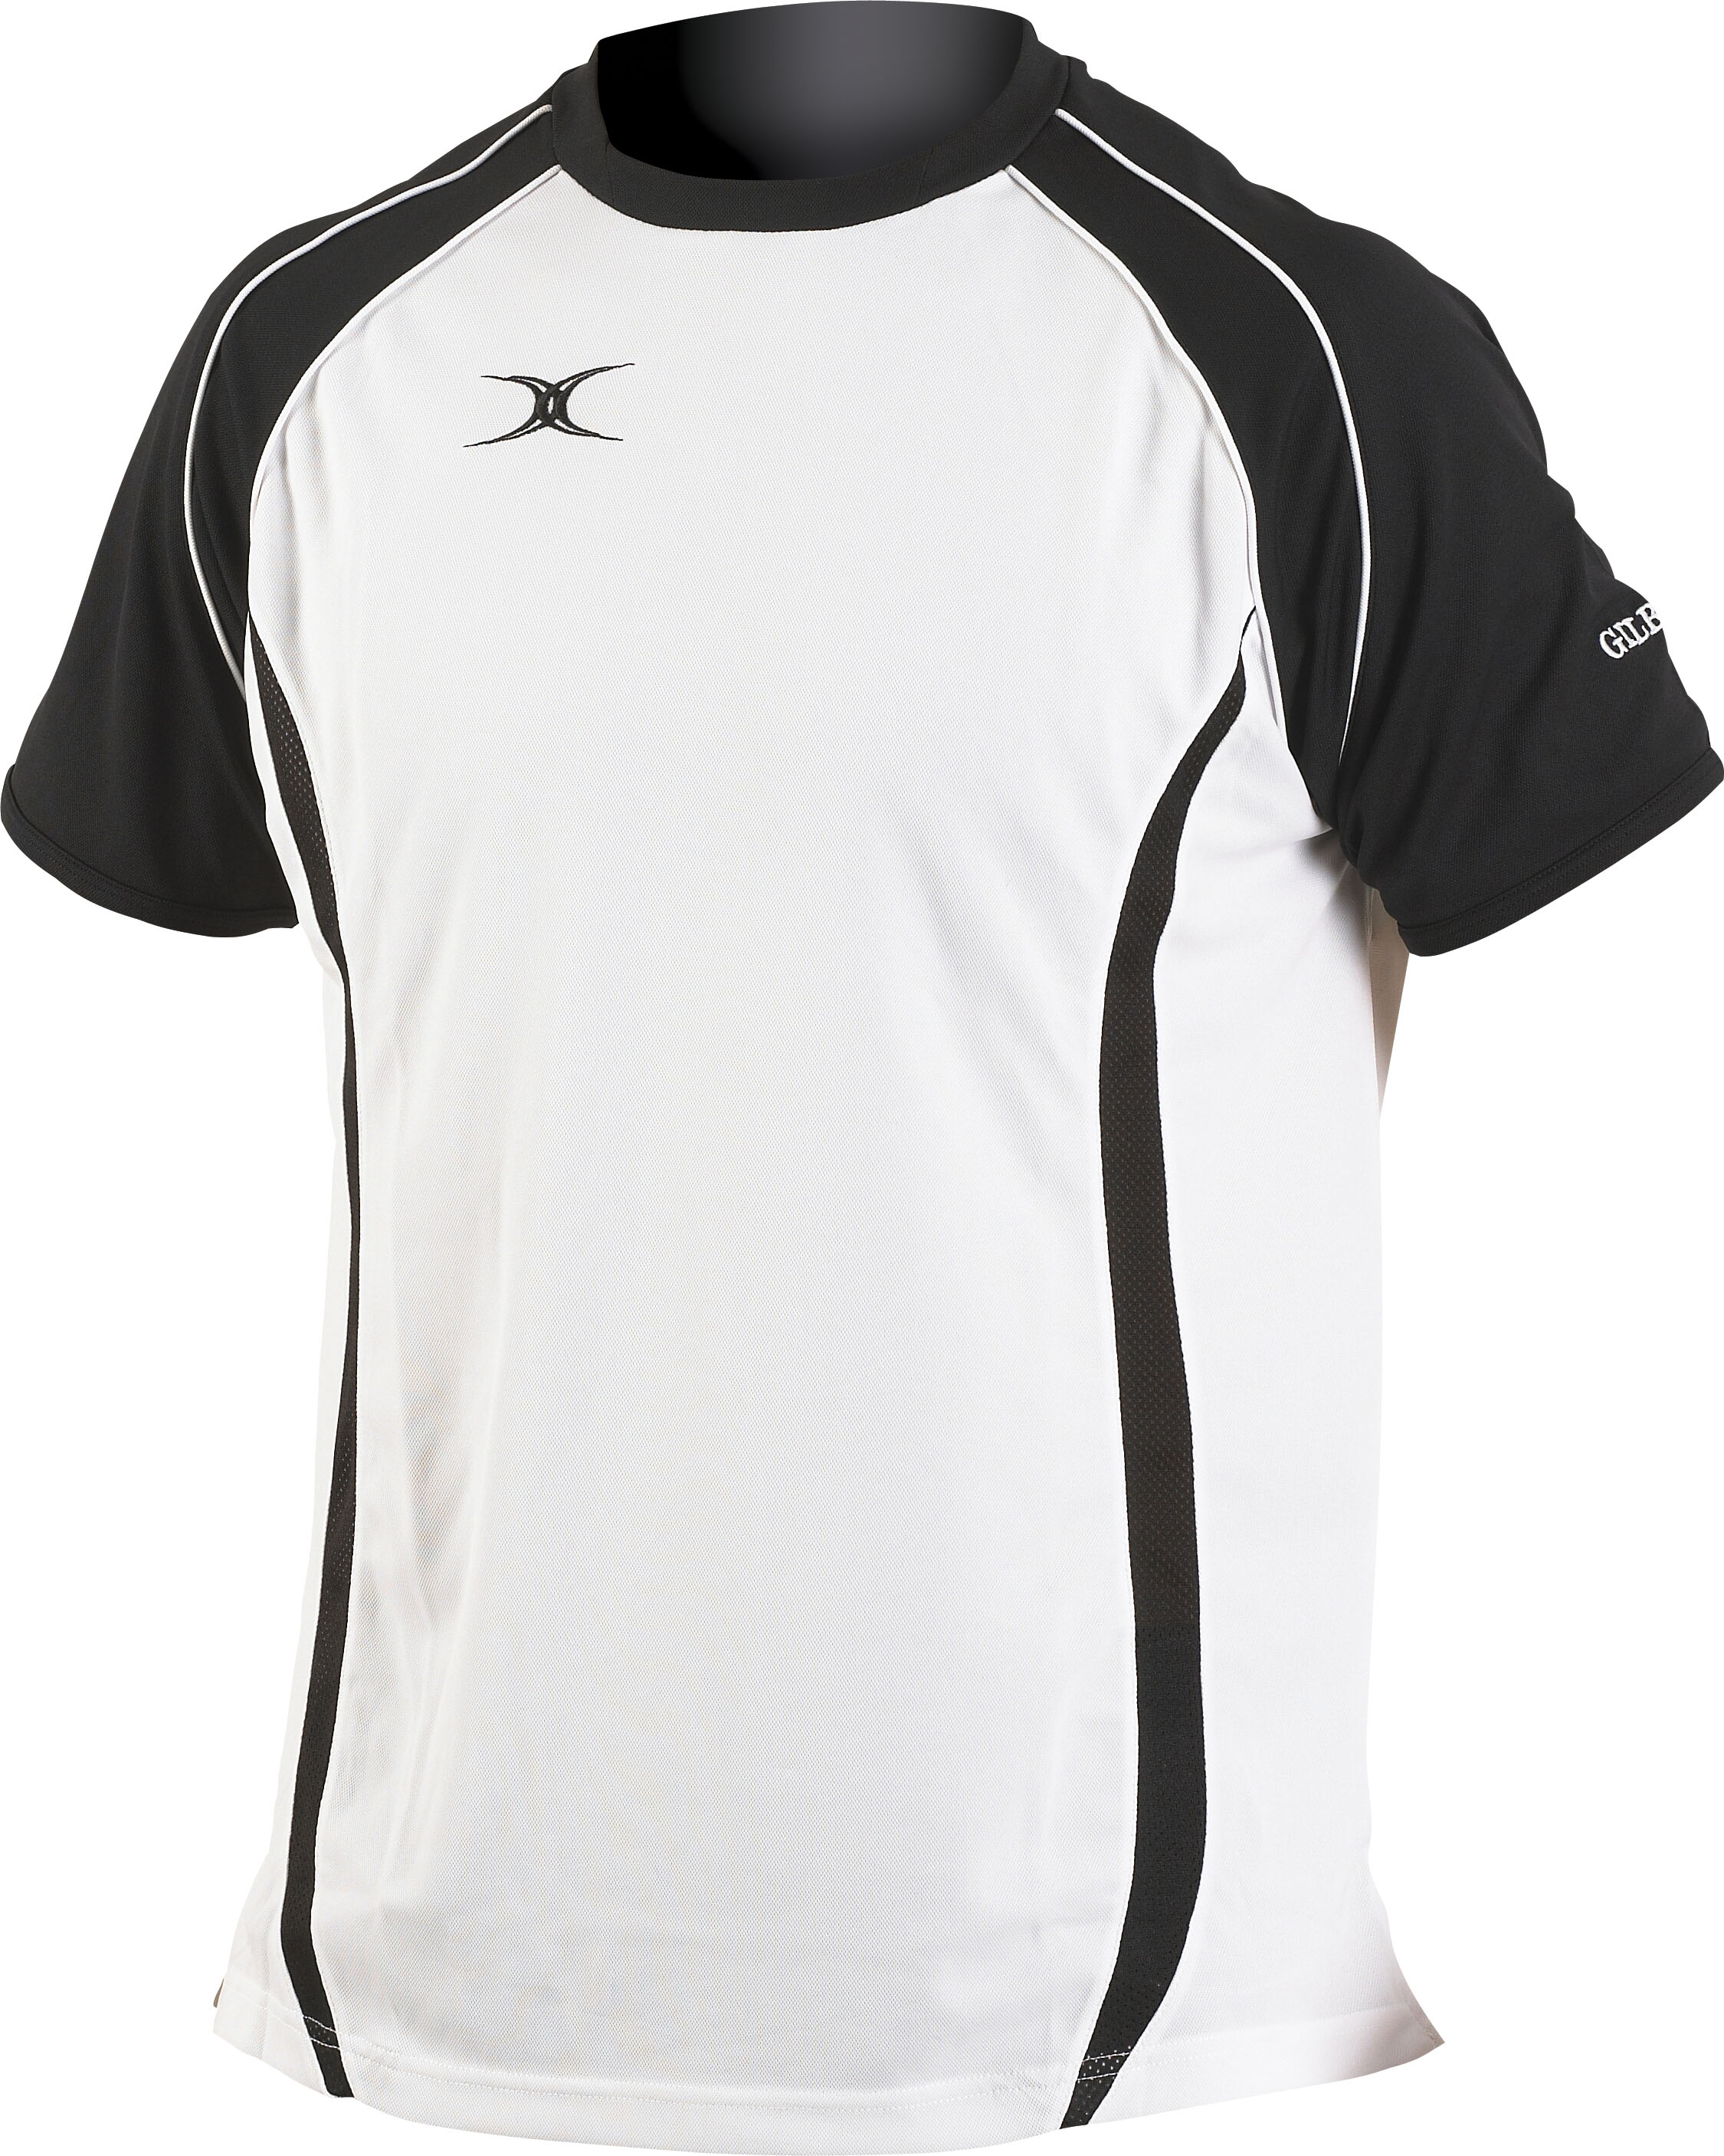 New Gilbert Performance Tee Durable Rugby Leisure Shirt ...